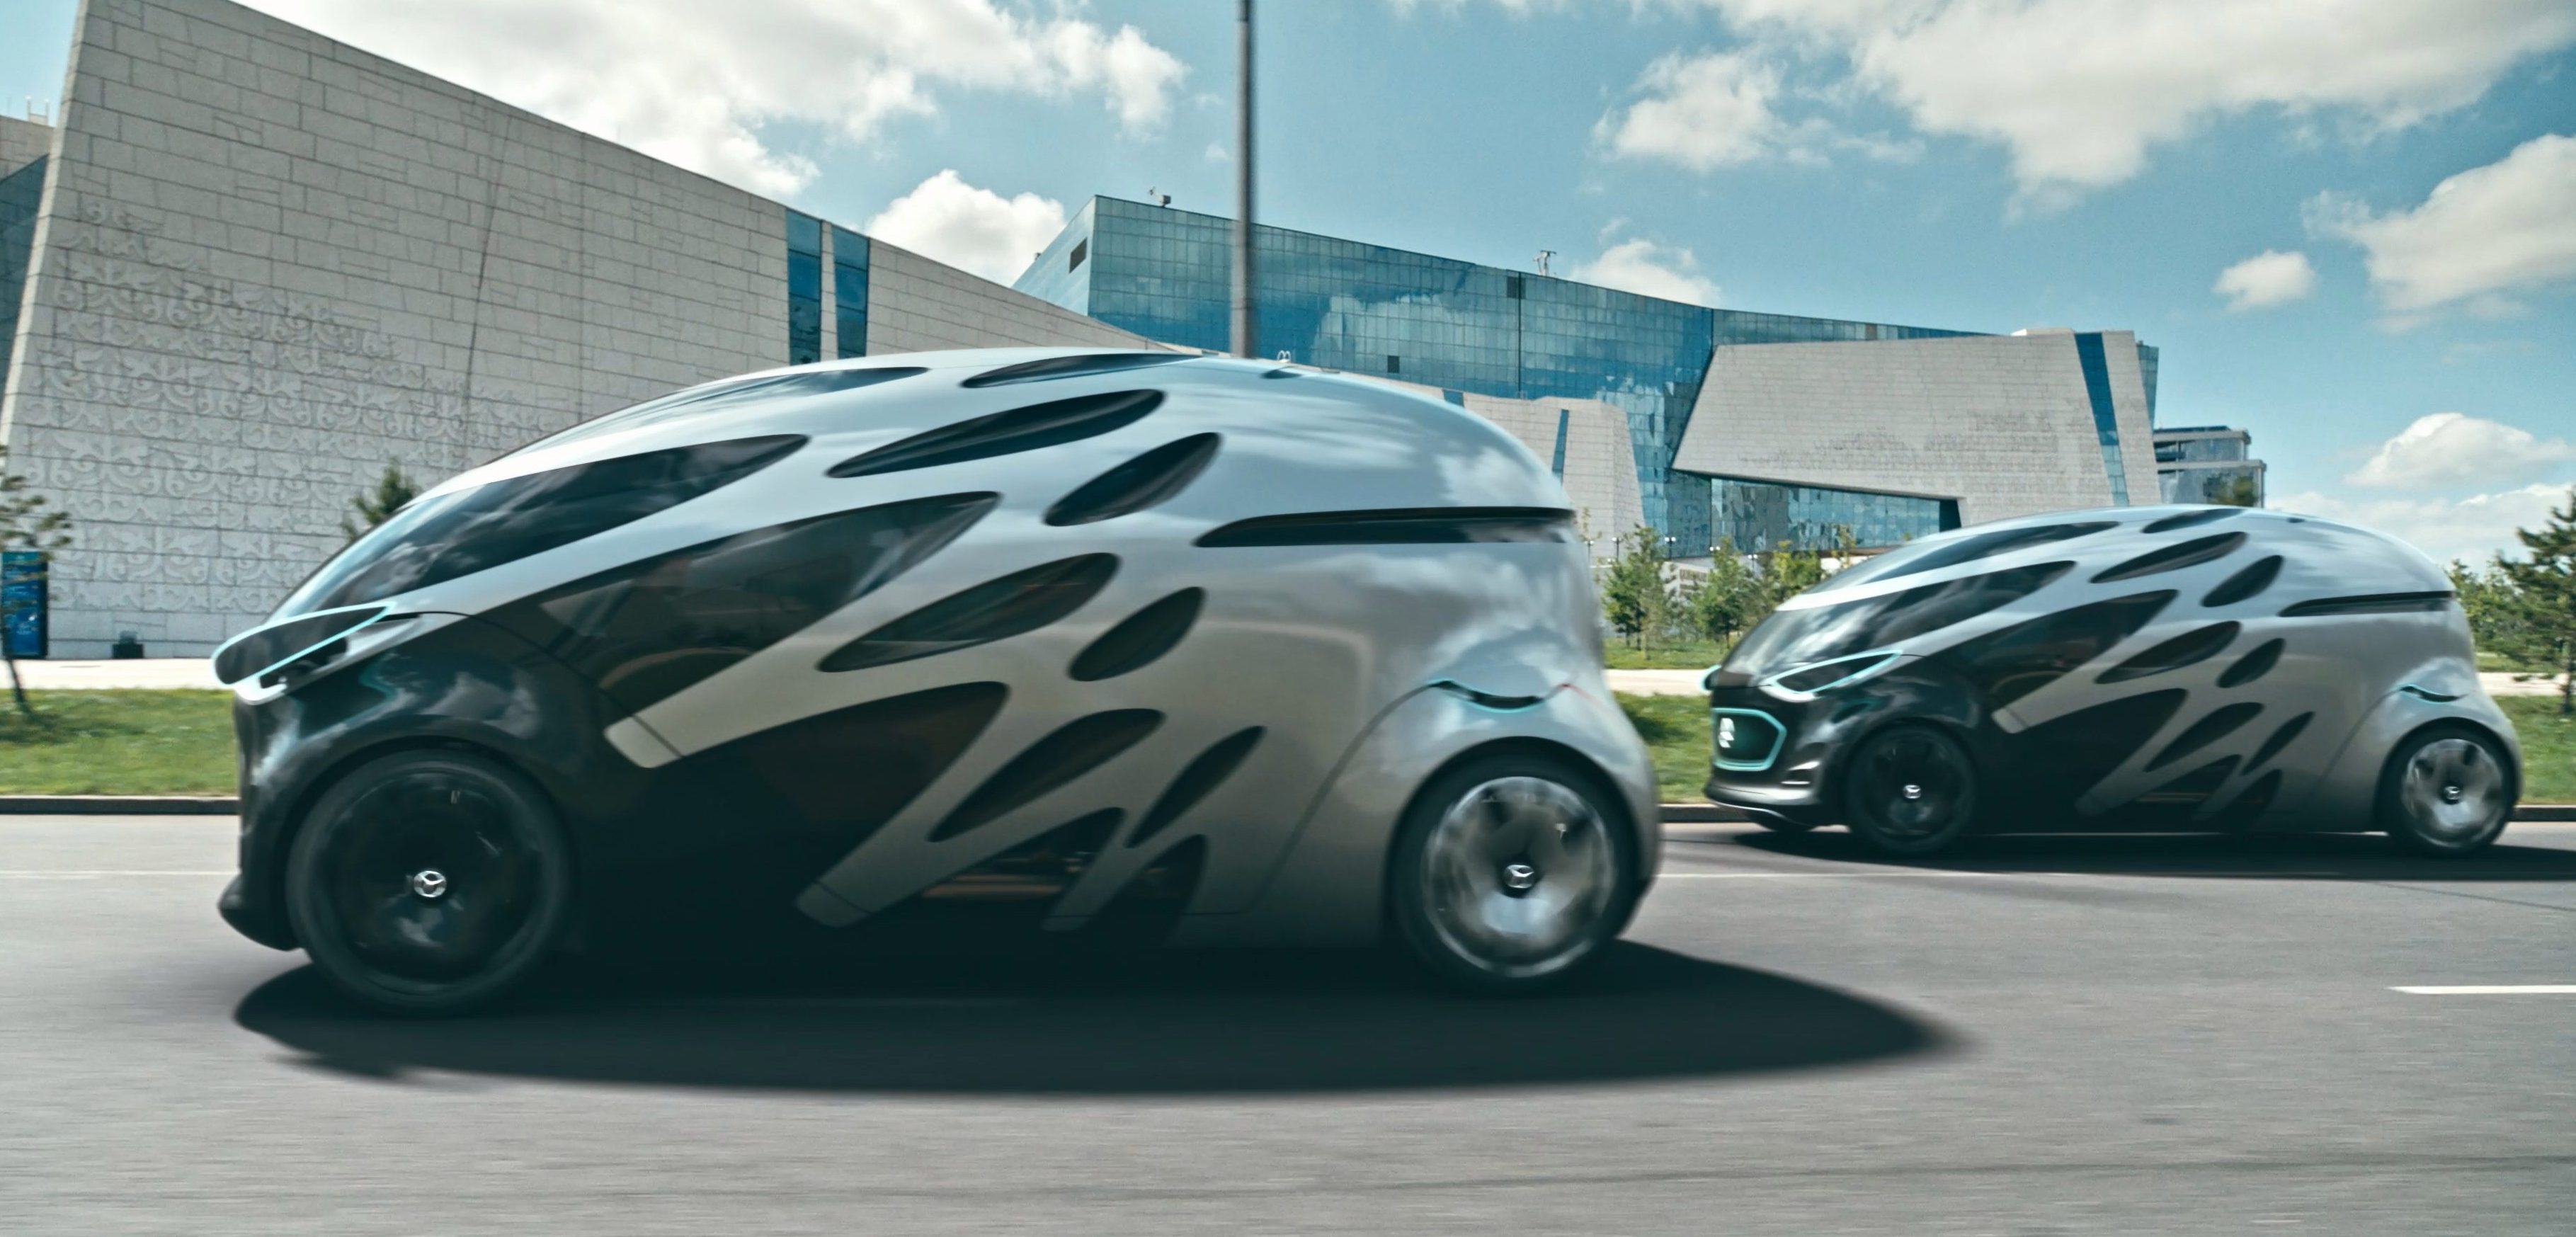 Mercedes Benz Vans Unveils Ugliest Electric Vehicle Concept To Date U2013 Why?